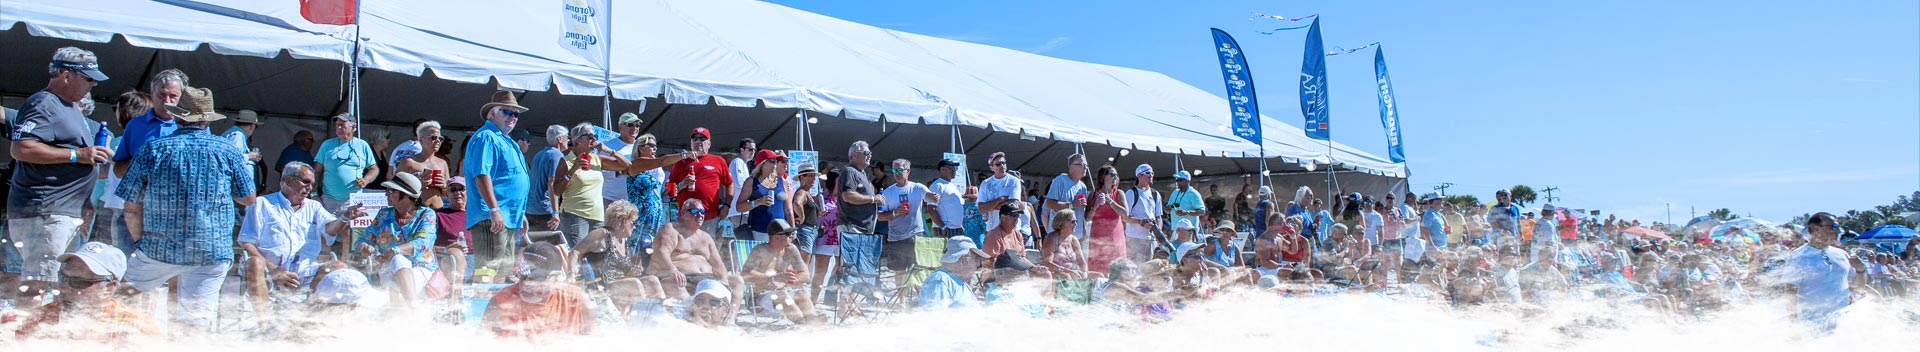 VIP Tent at the 2019 Englewood Beach Waterfest